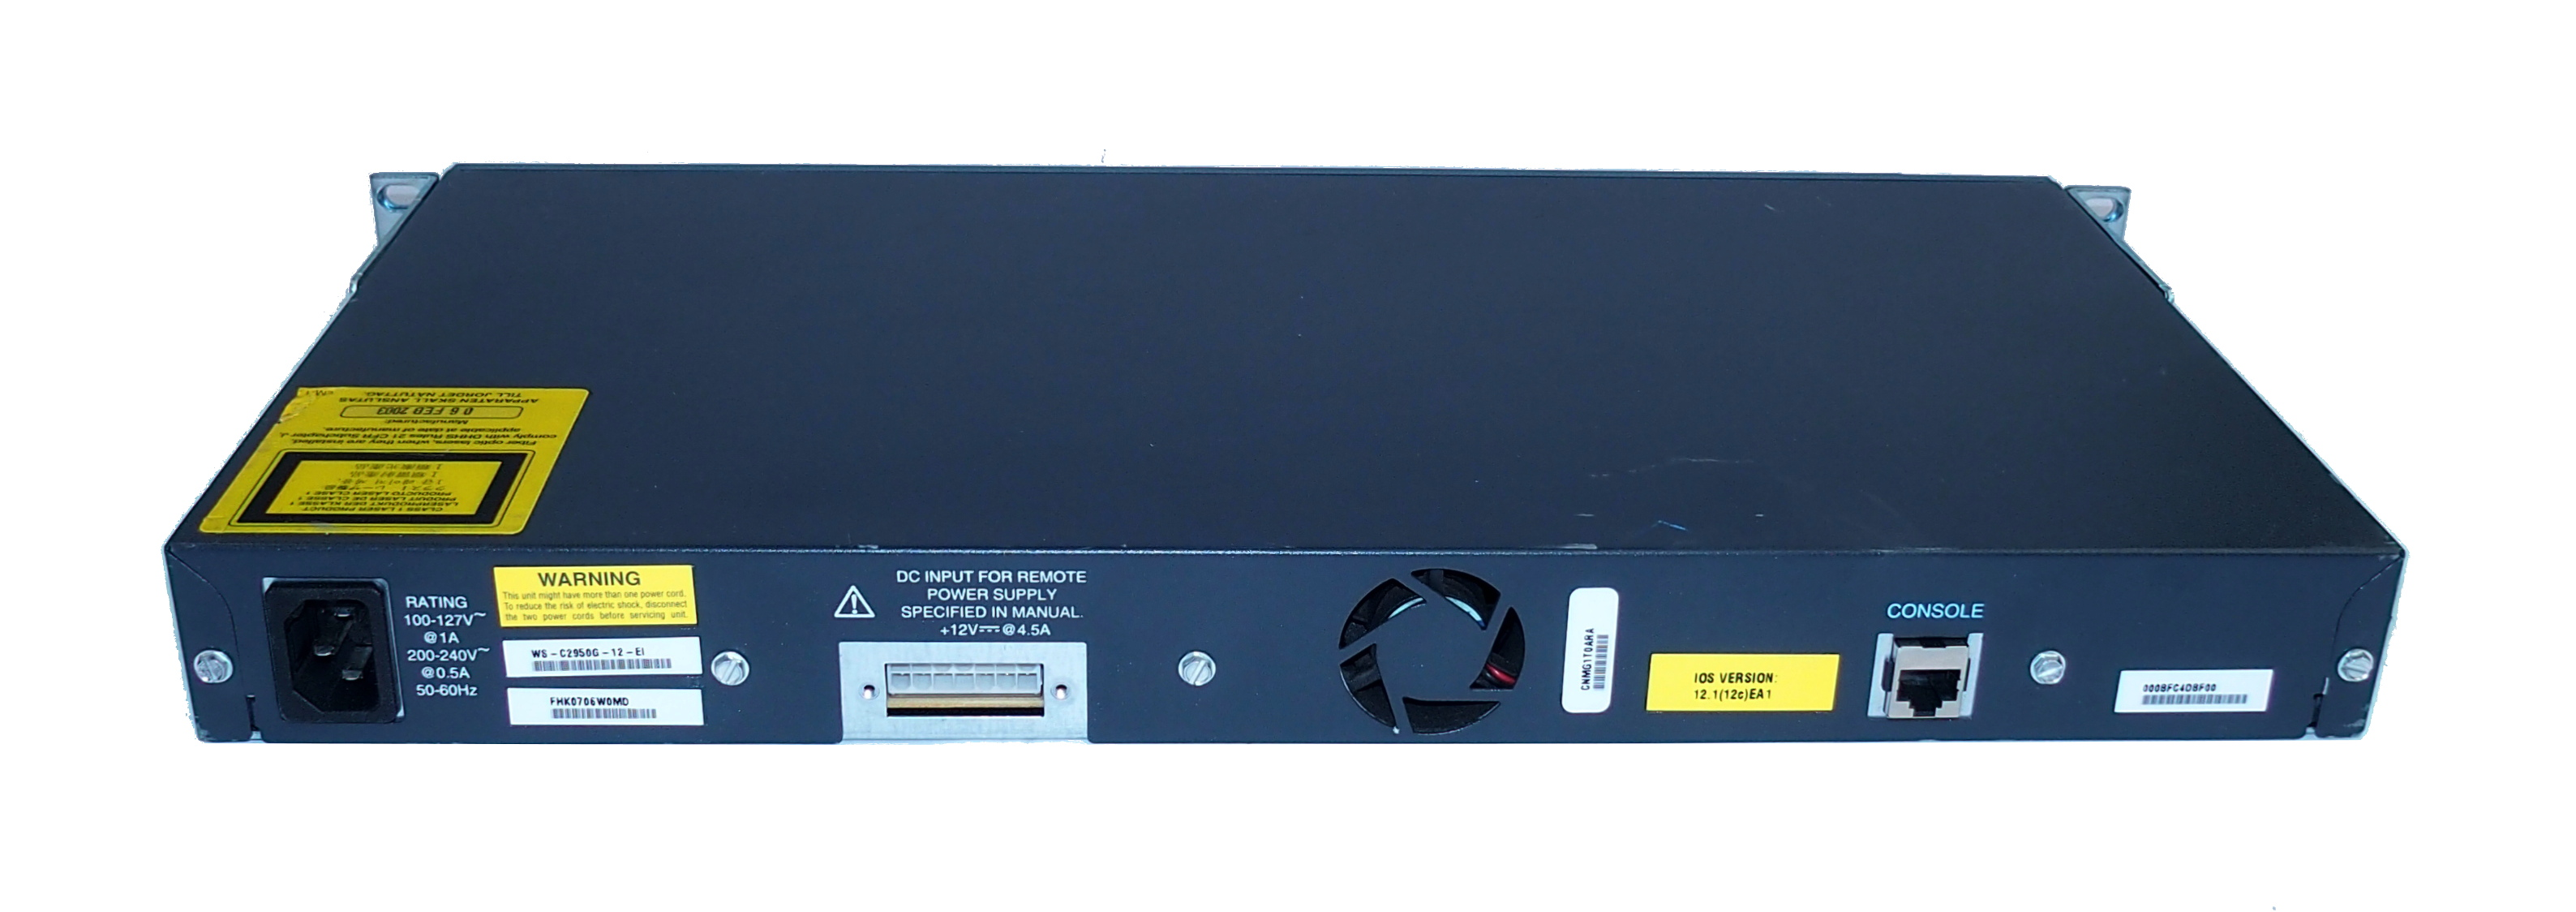 Cisco Ws C2950g 12 Ei Catalyst 2950 Port Switch With Rack Mount Out Of Stock